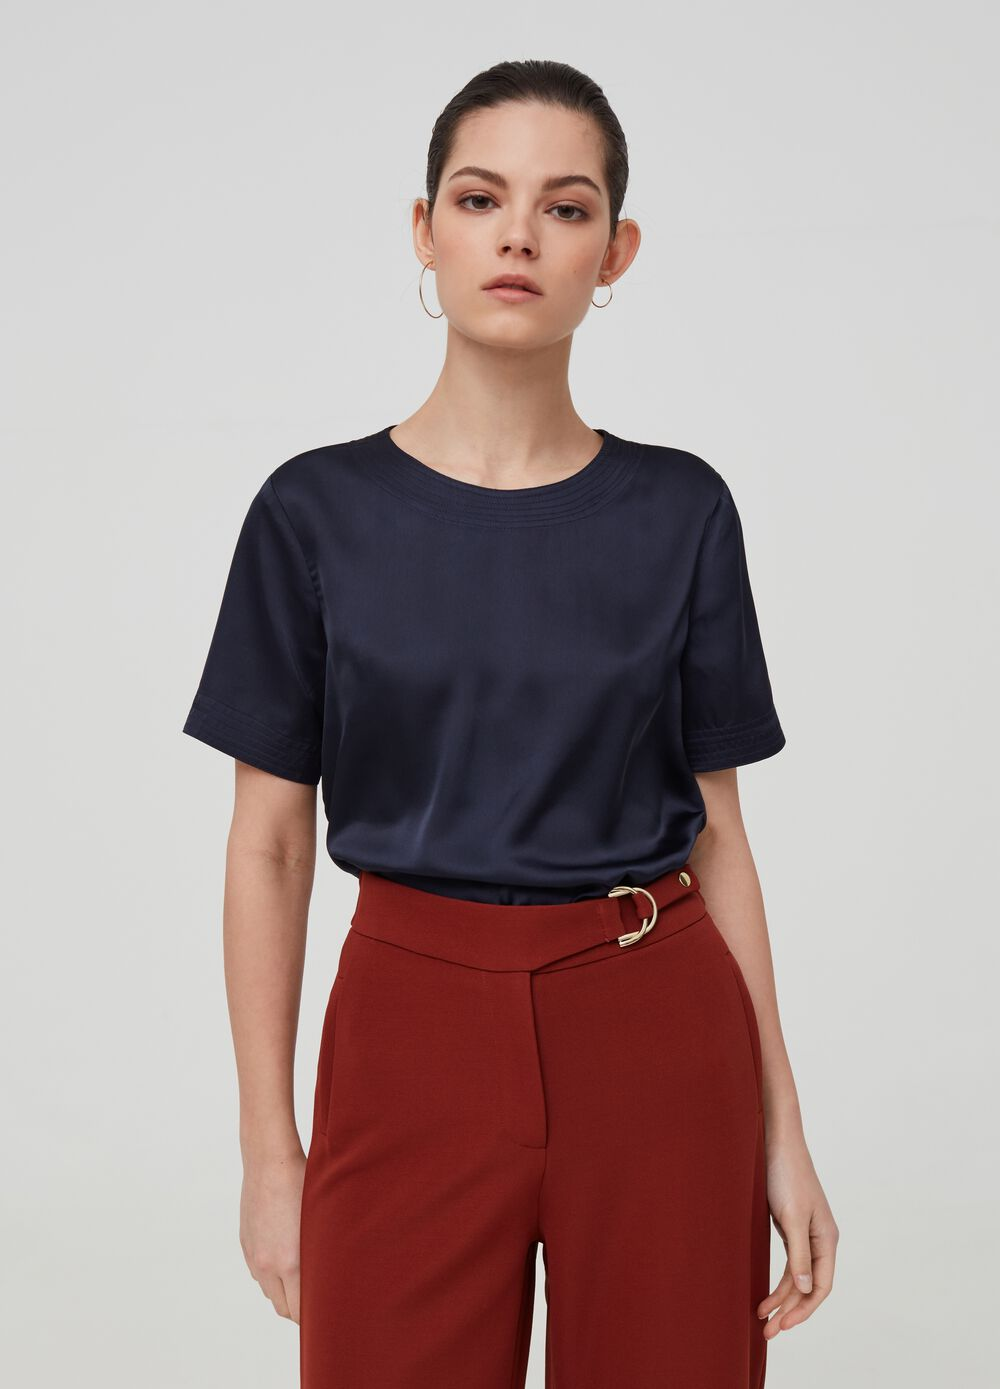 Solid colour blouse with short sleeves